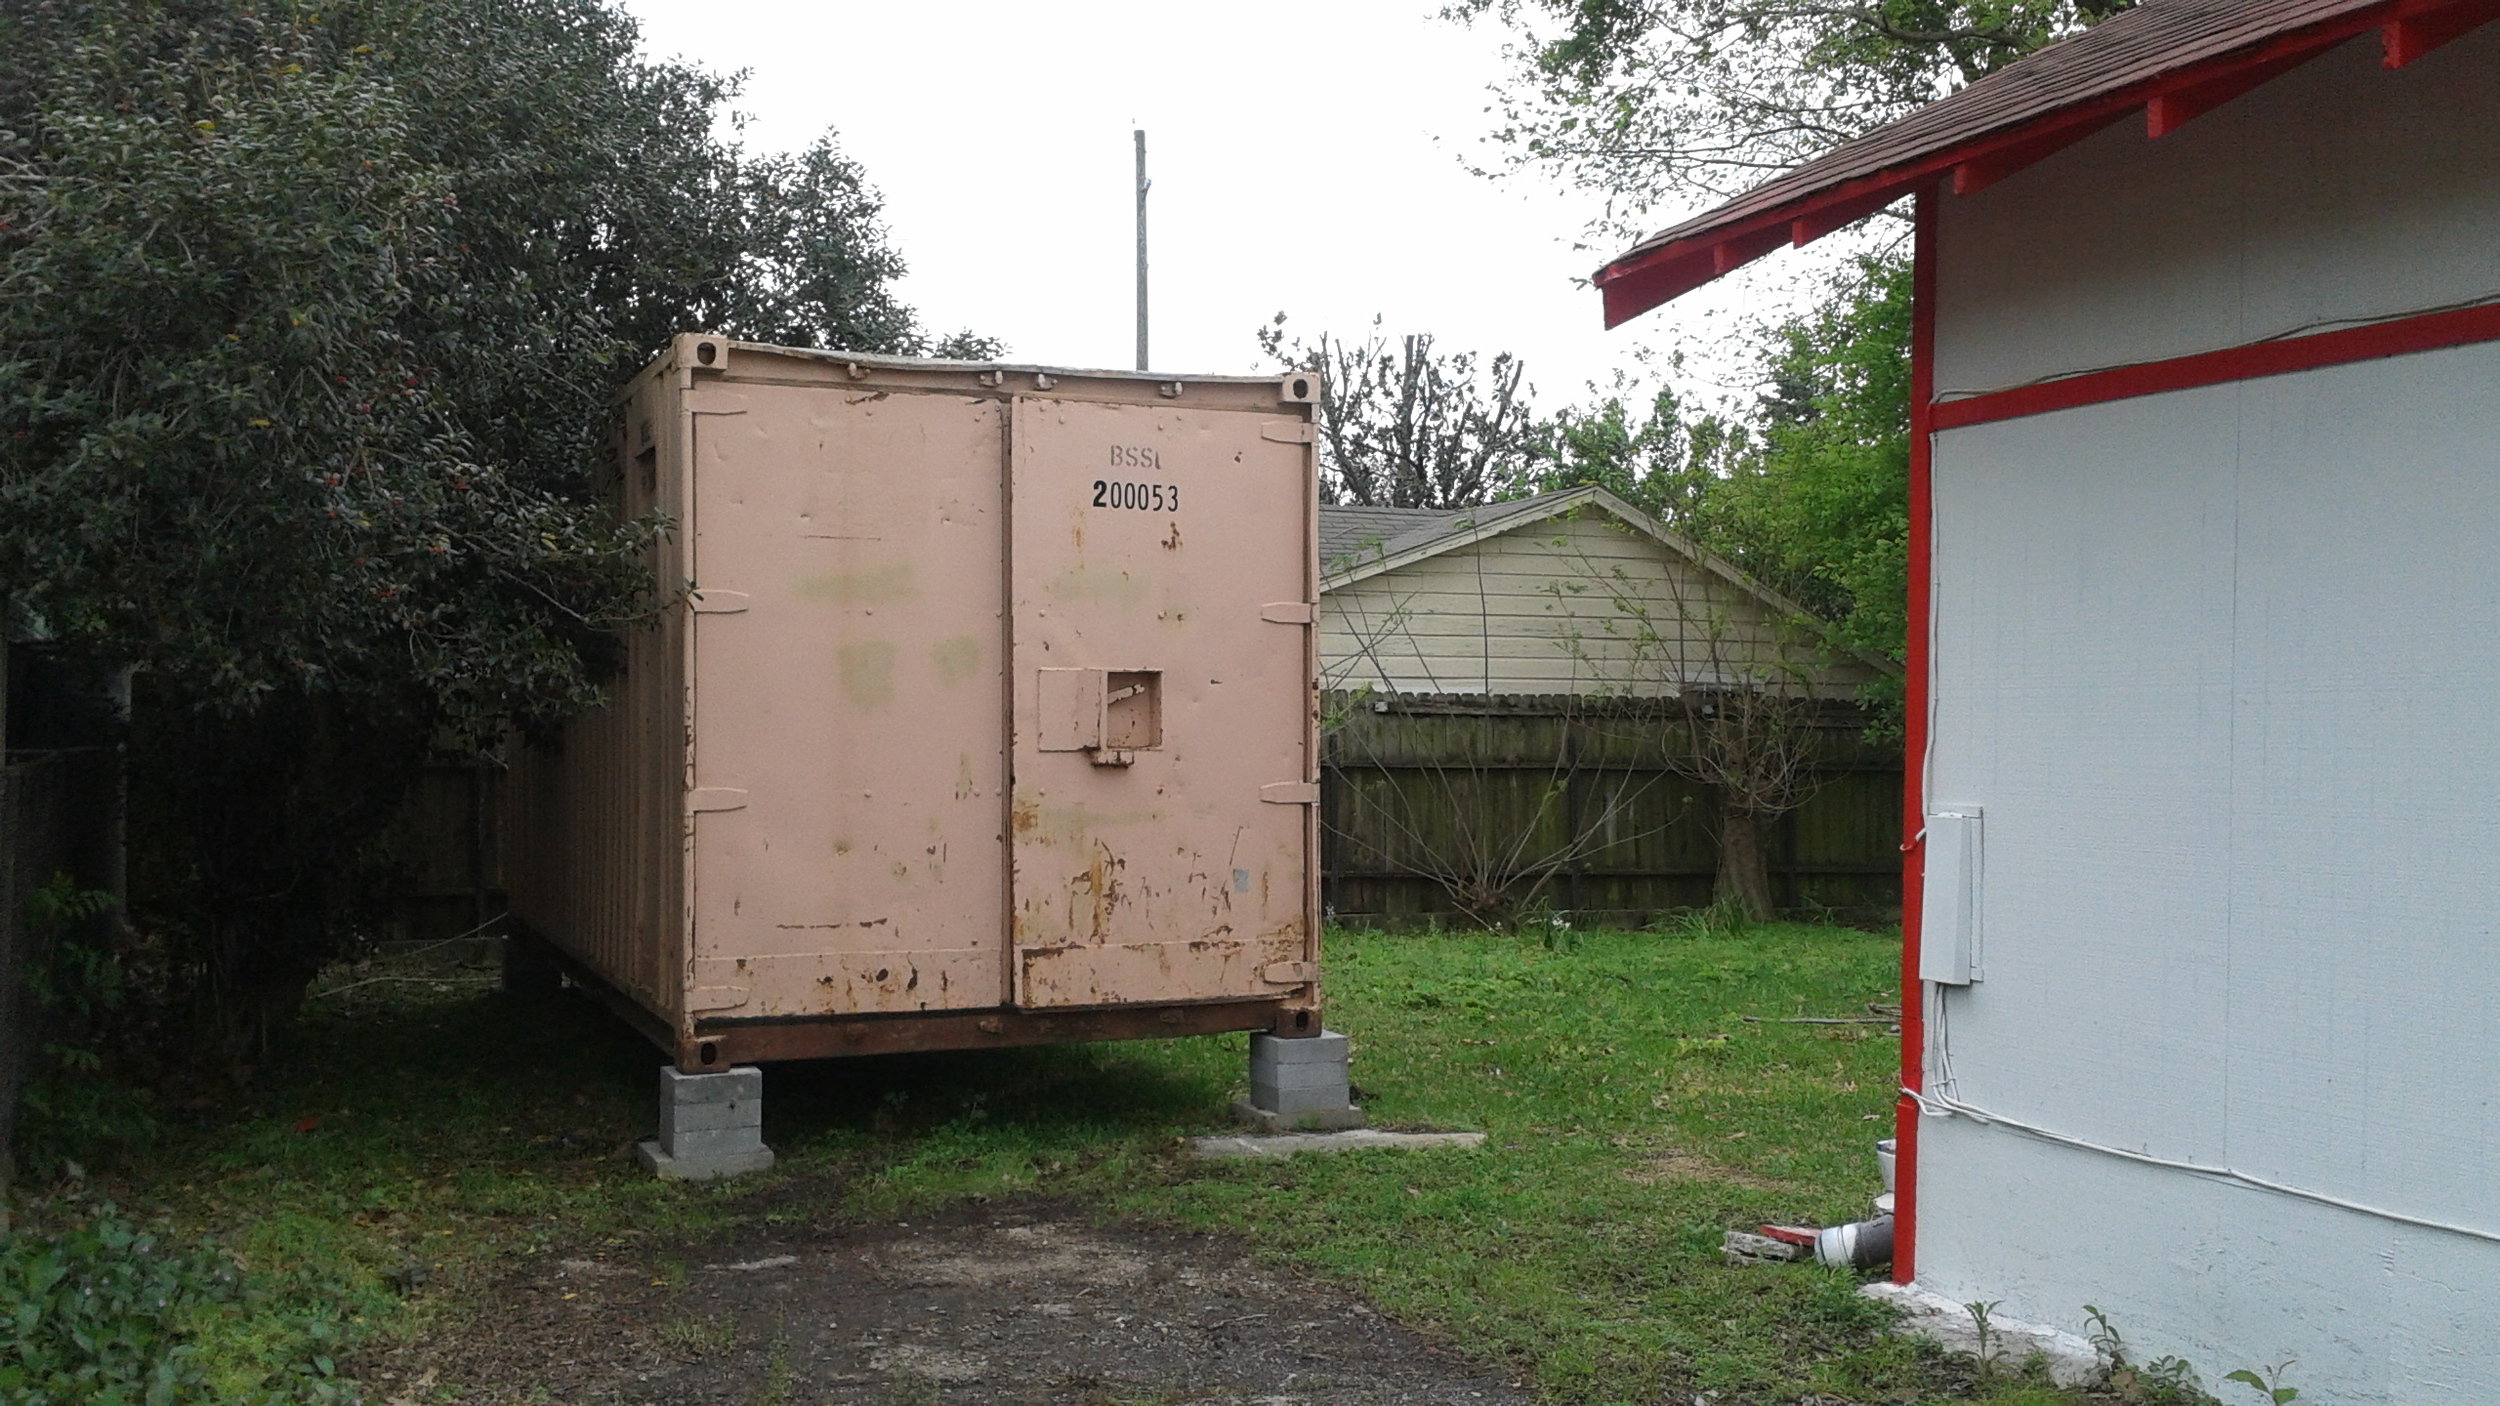 The ISBU container from the driveway of the Sanchez Law Building.